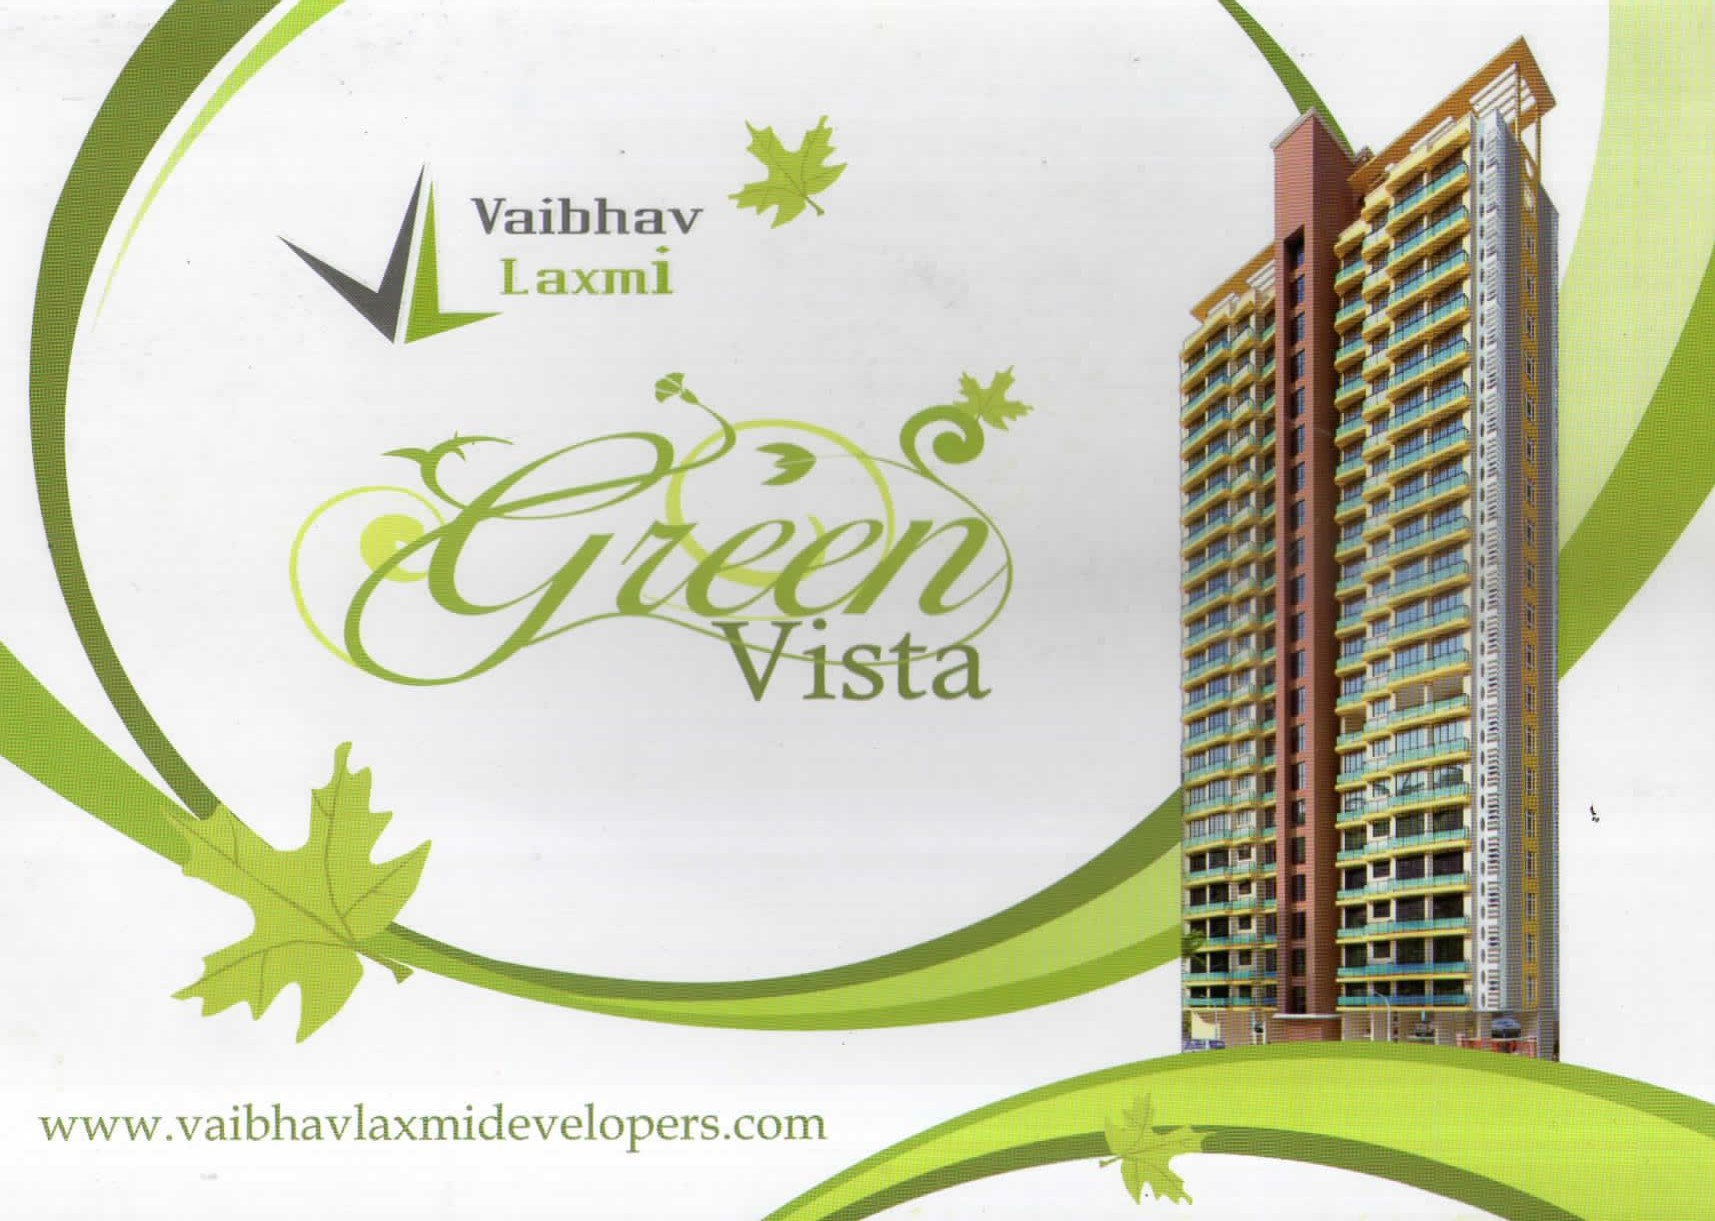 Green Vista - Brochure